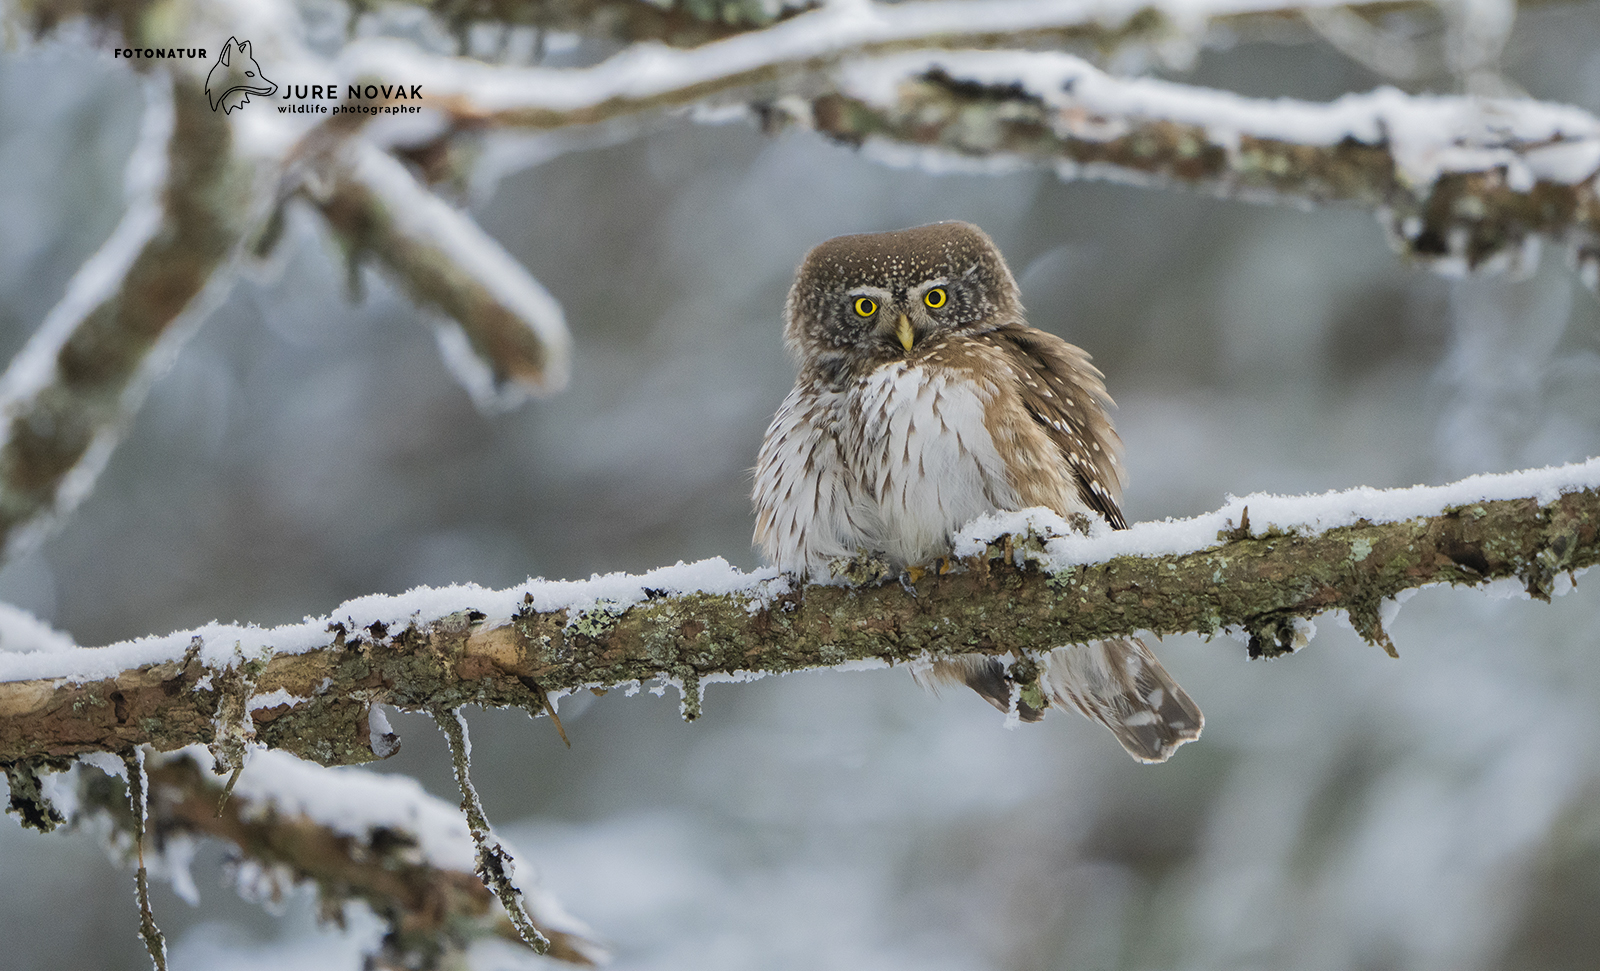 Wildlife photography workshops in Slovenia